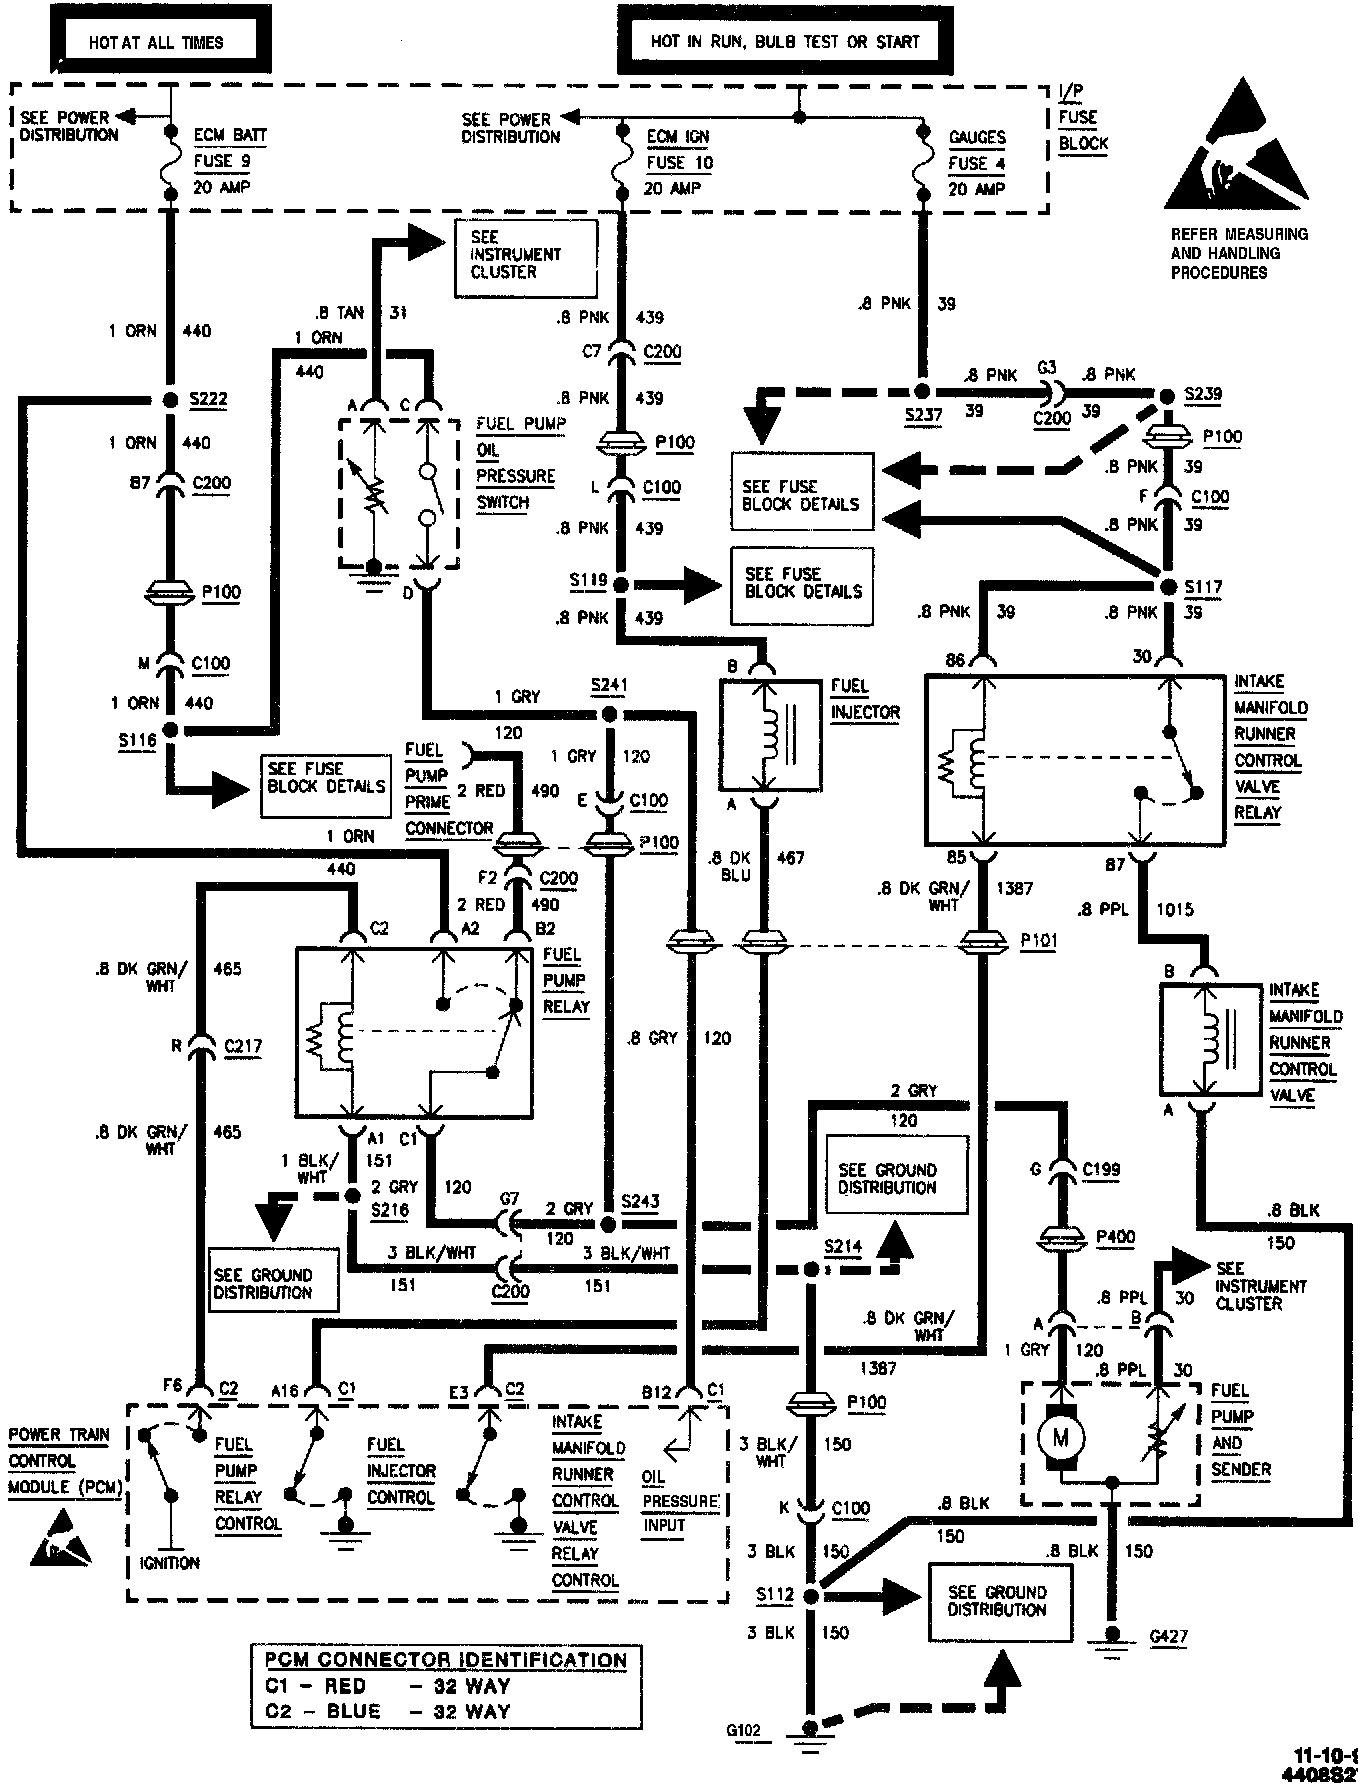 Speaker Wiring Diagram 1986 F150 Will Be A Thing 78 Ford 86 S10 Engine Transmission Truck Diagrams